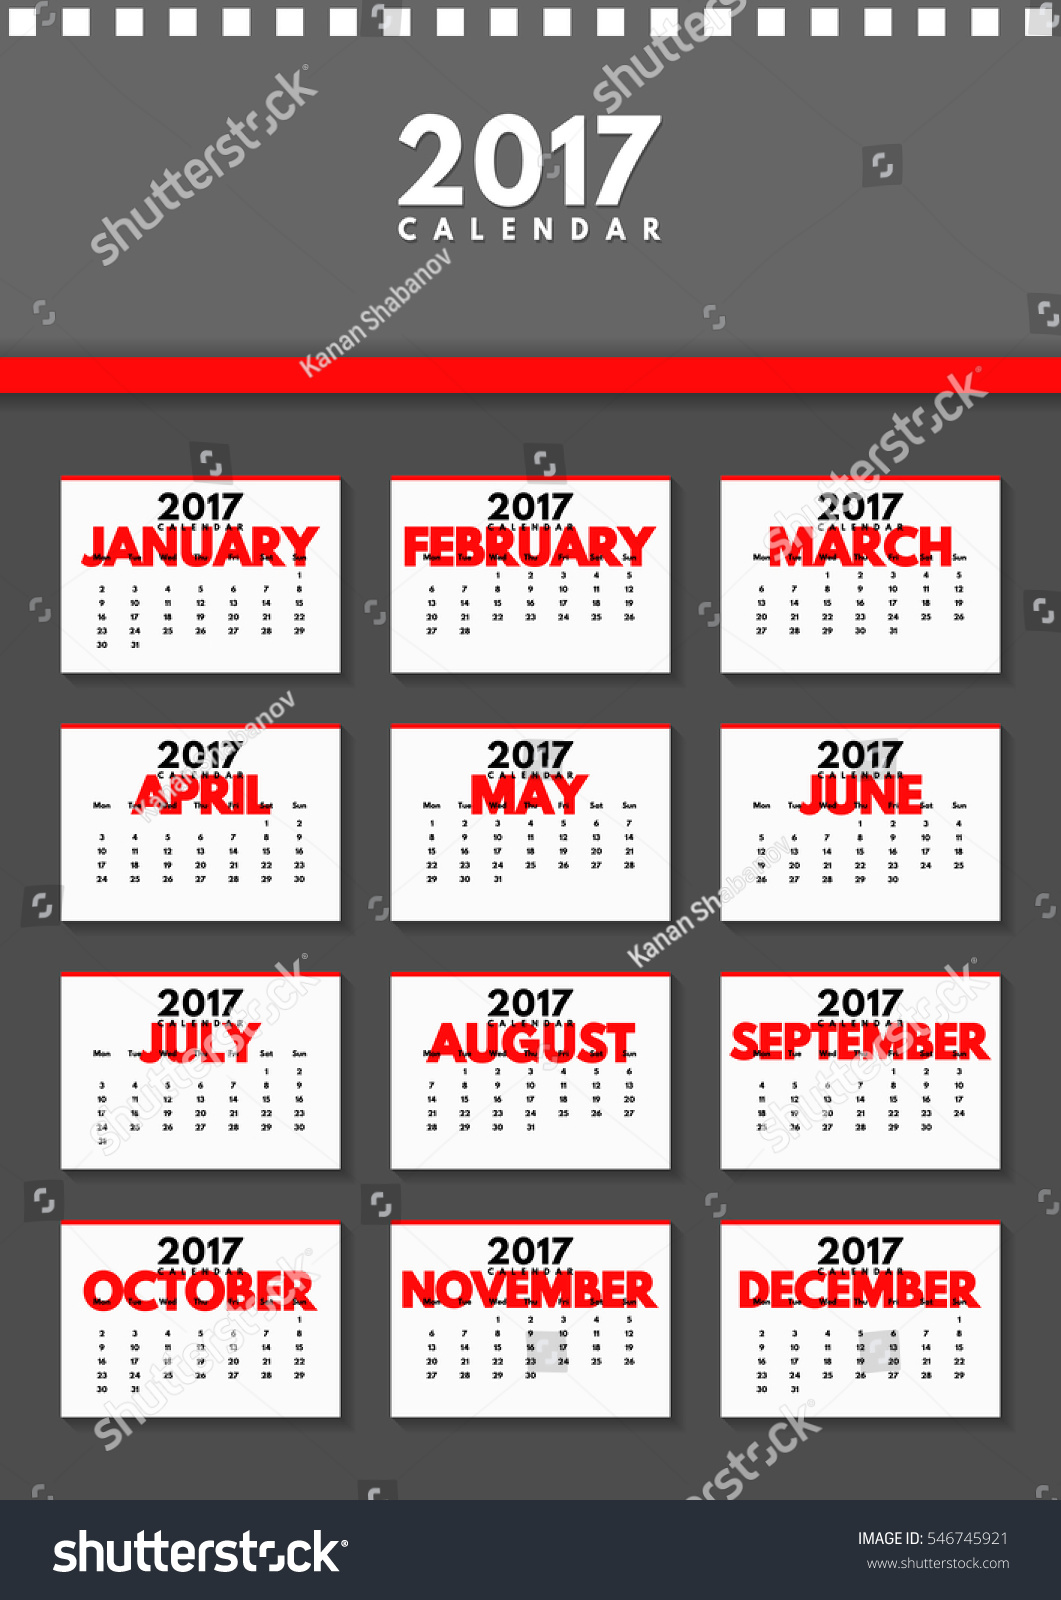 Calendar All Months : Vector calendar year all months stock